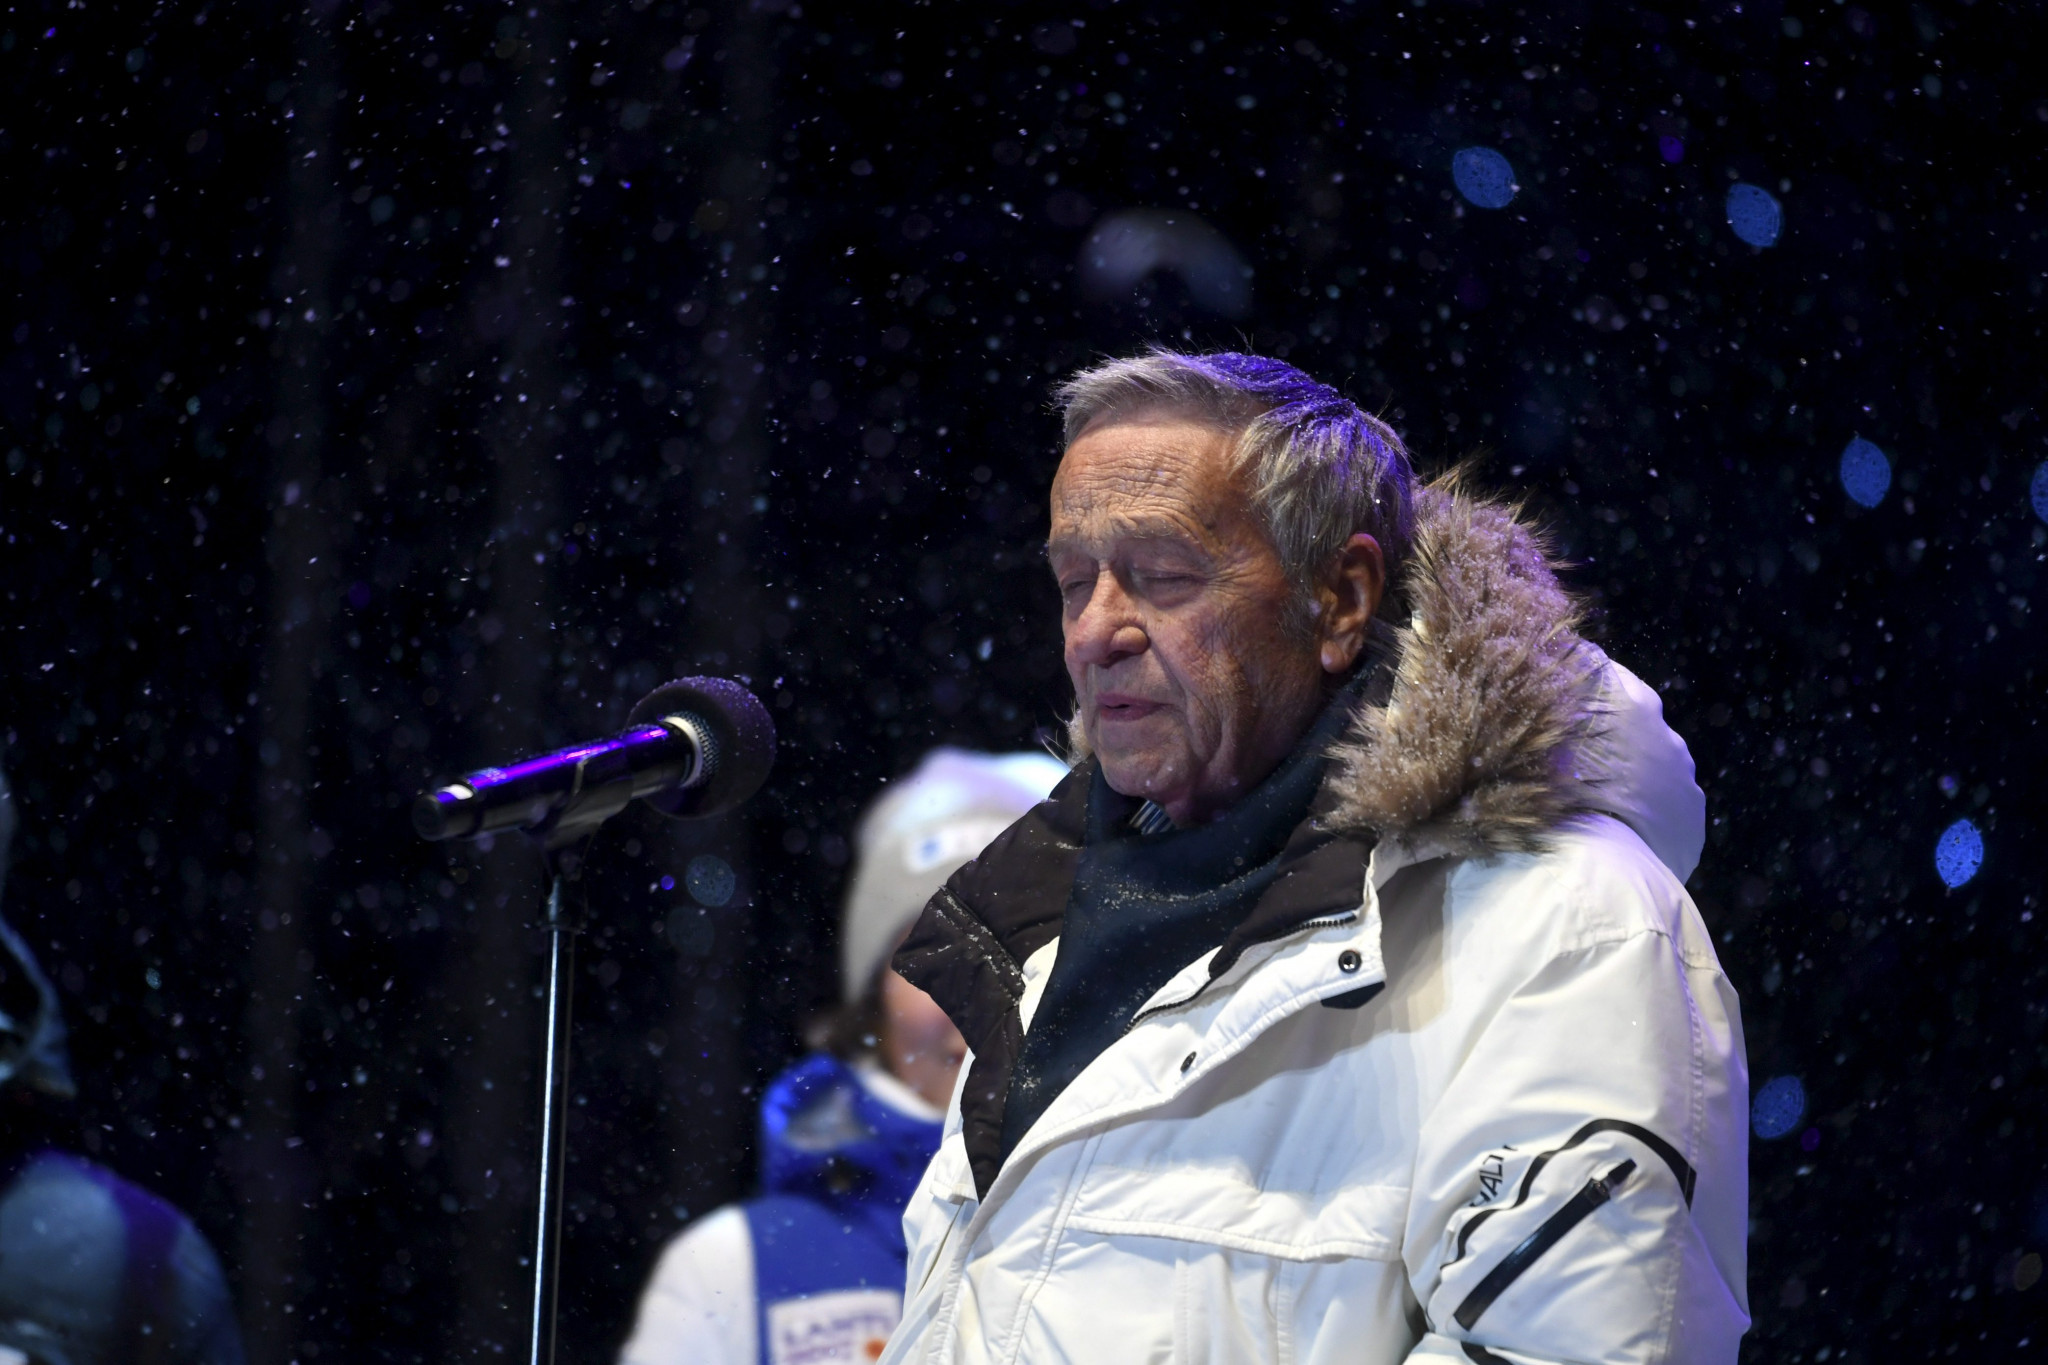 International Ski Federation President Gian-Franco Kasper is one of two IOC members currently benefiting from age limit extensions introduced as part of Agenda 2020 ©Getty Images